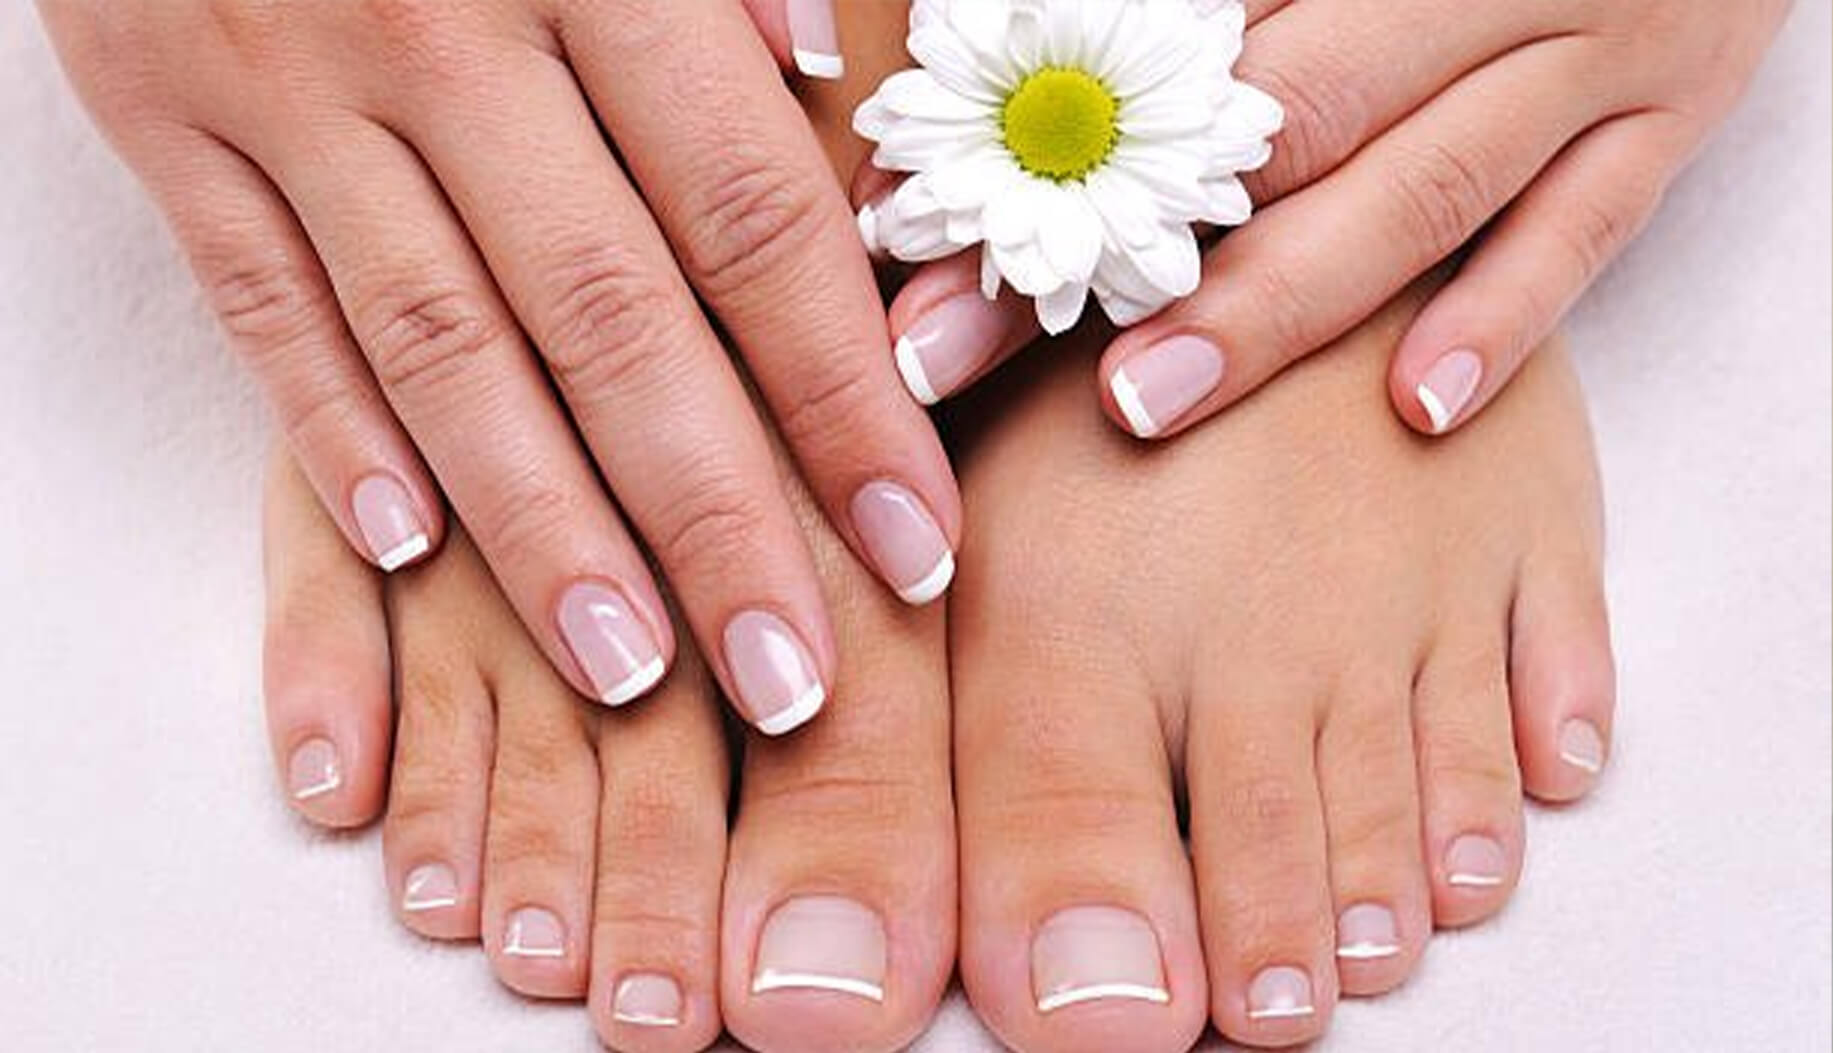 Nailcare and hygiene